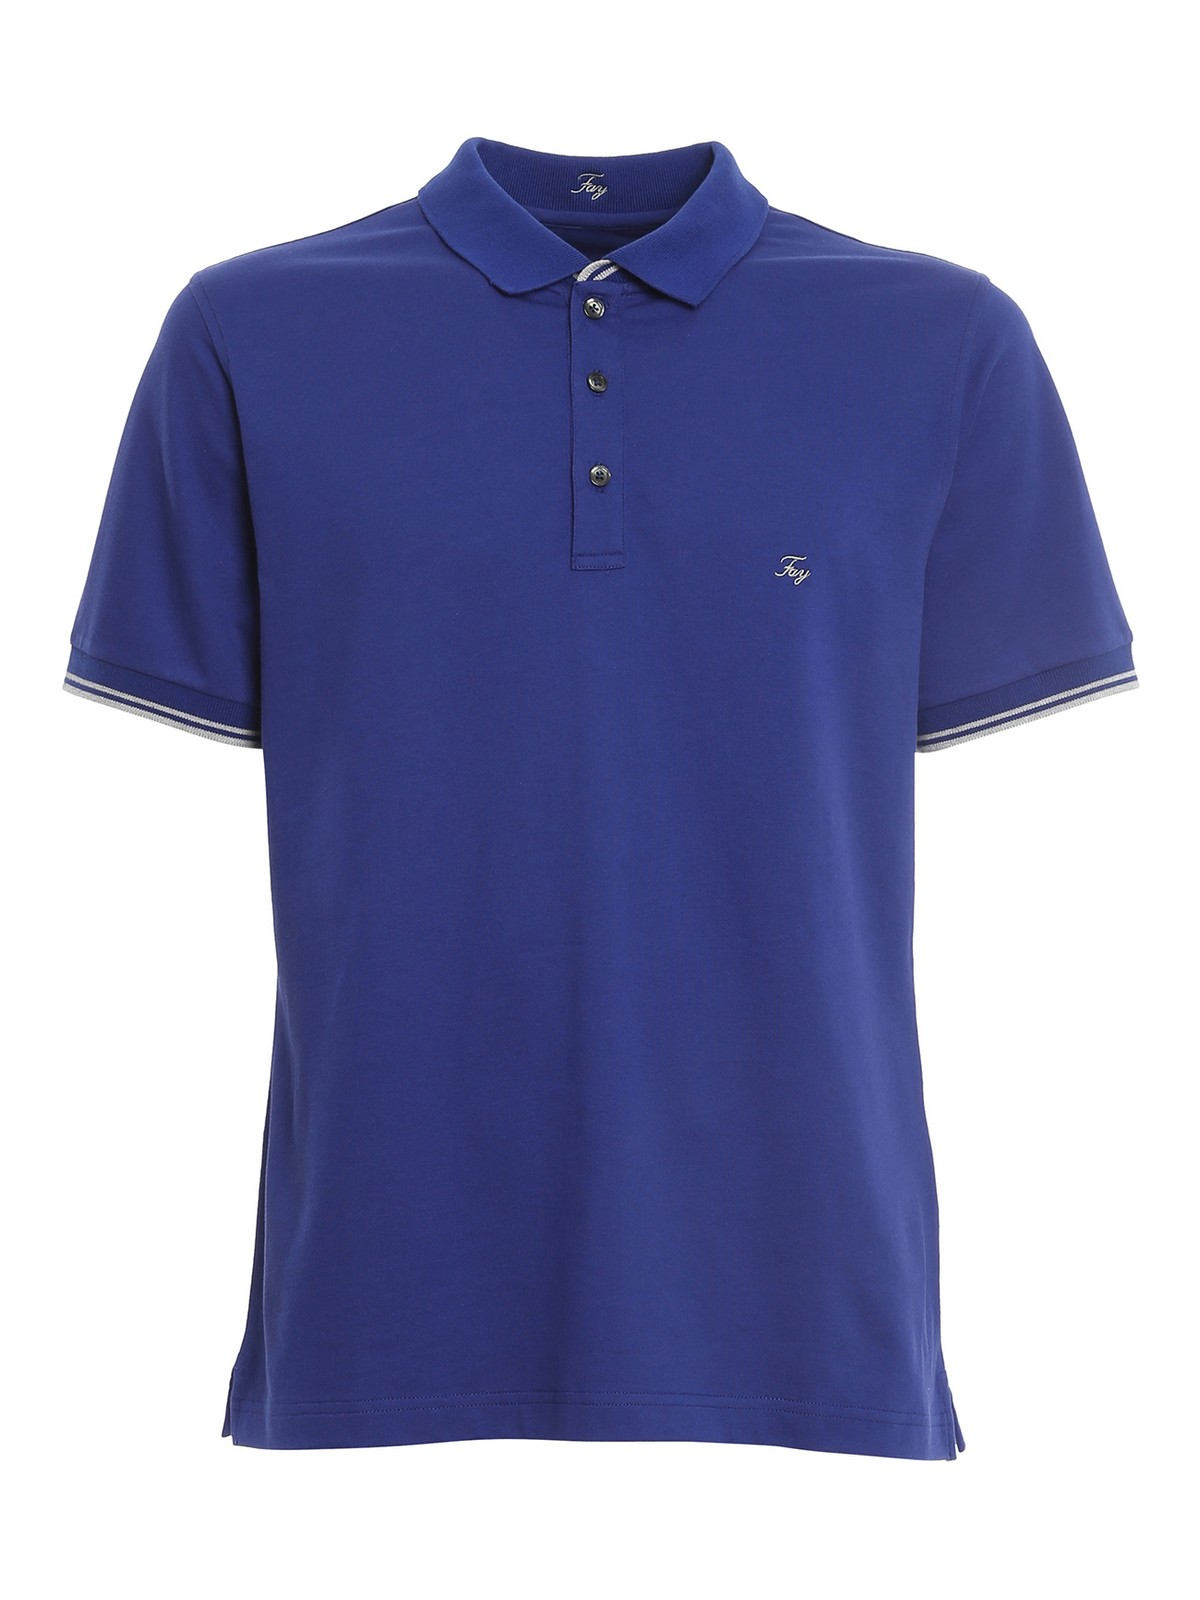 Fay LOGO LETTERING EMBROIDERY POLO